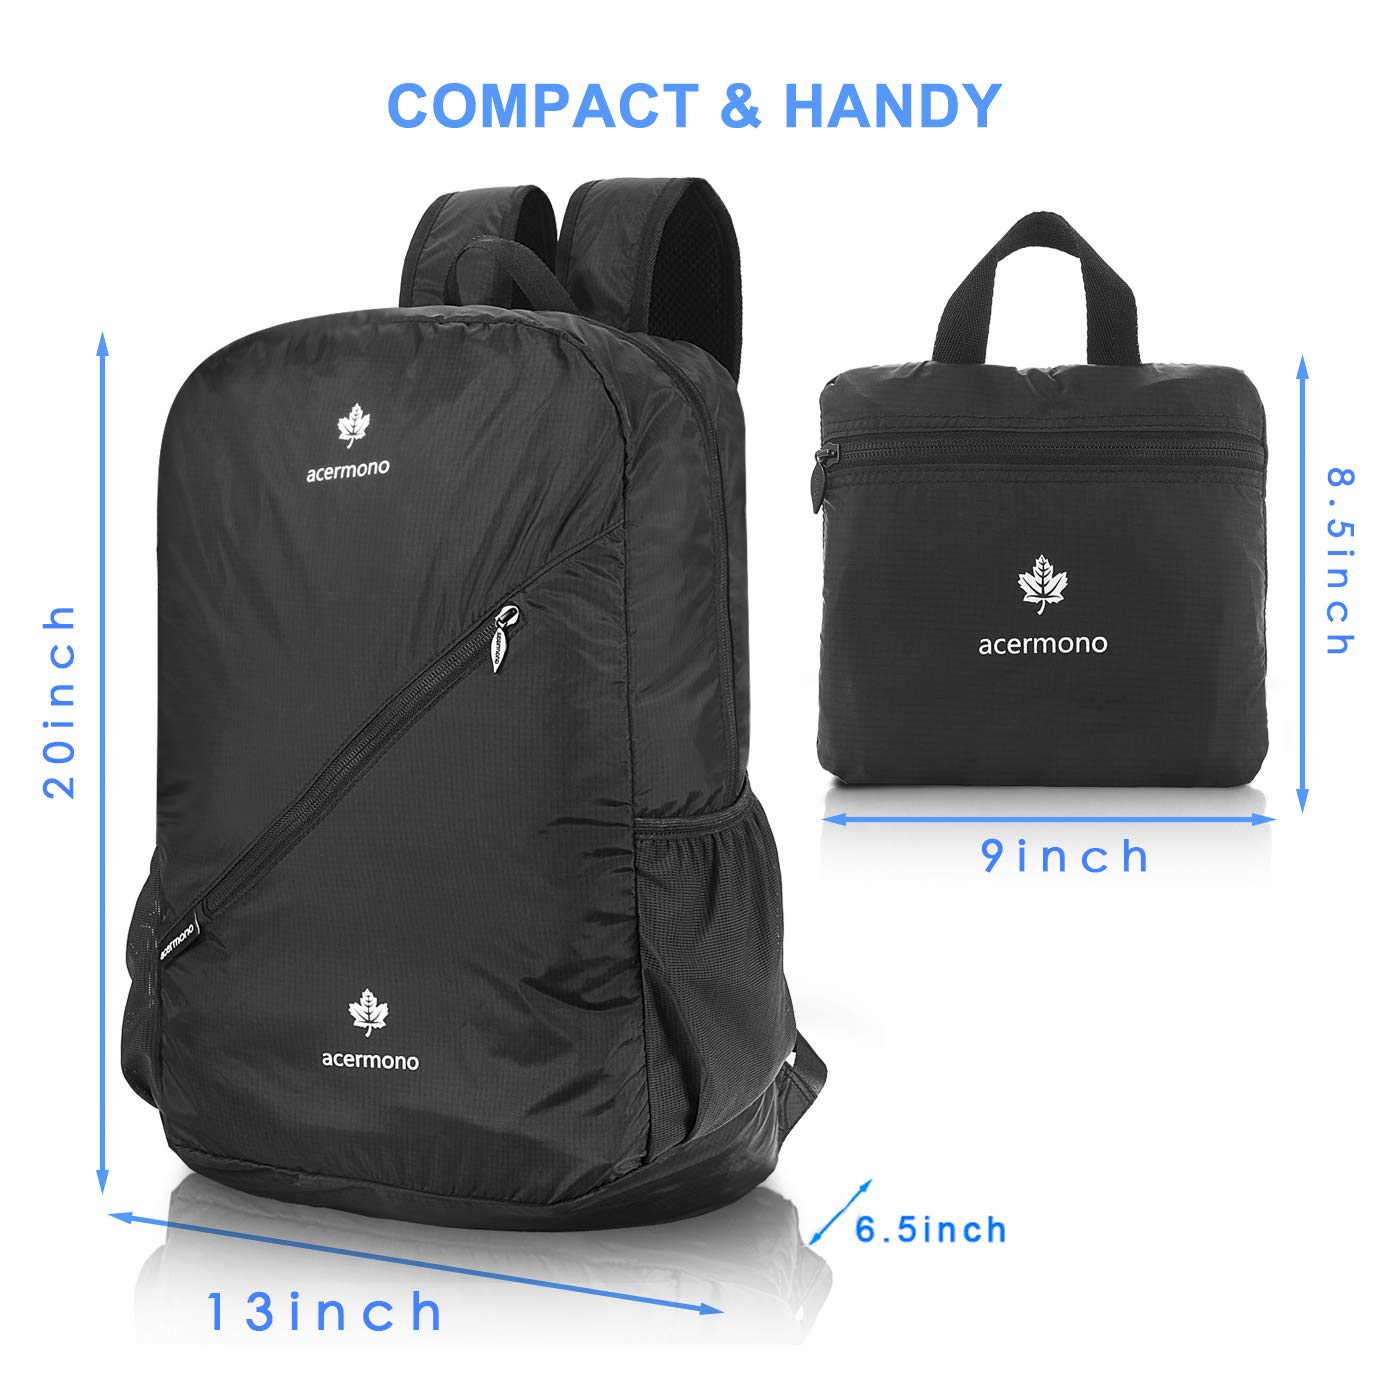 Amazon.com   acermono Lightweight Packable Backpack Travel Hiking Daypack 34eecb67a09f0